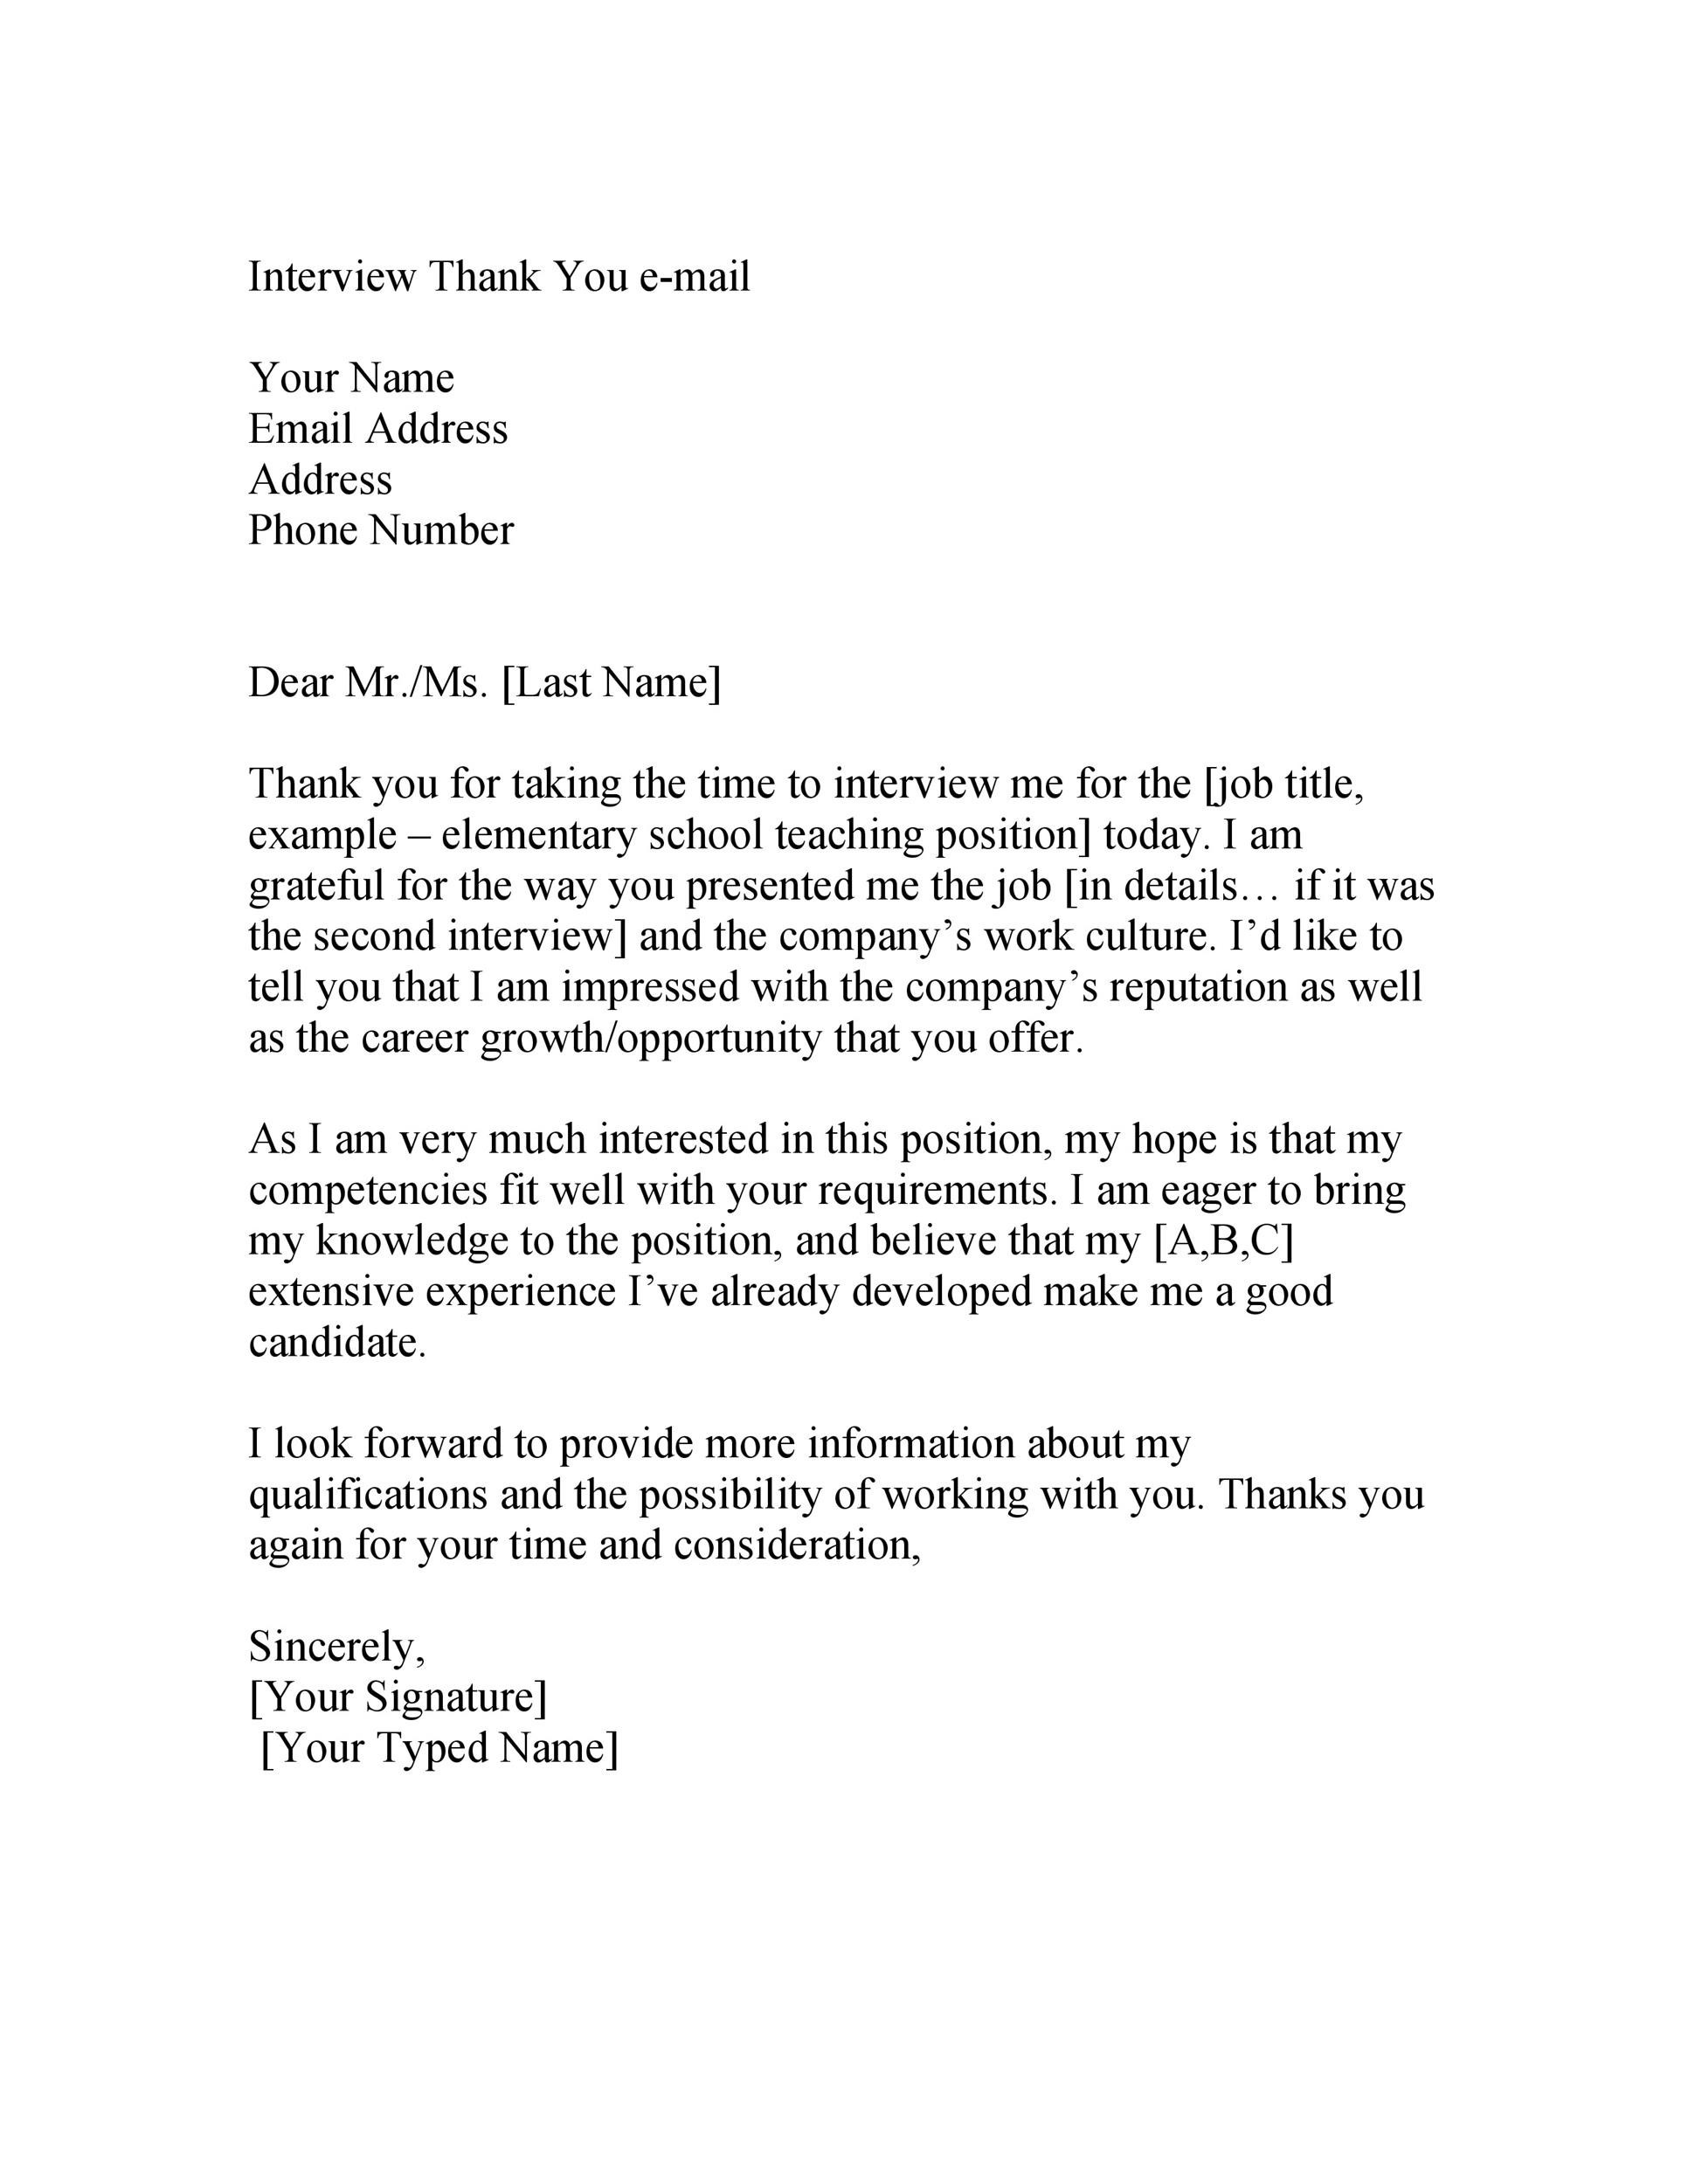 40 Thank You Email After Interview Templates - Template Lab - thank you for the opportunity to interview